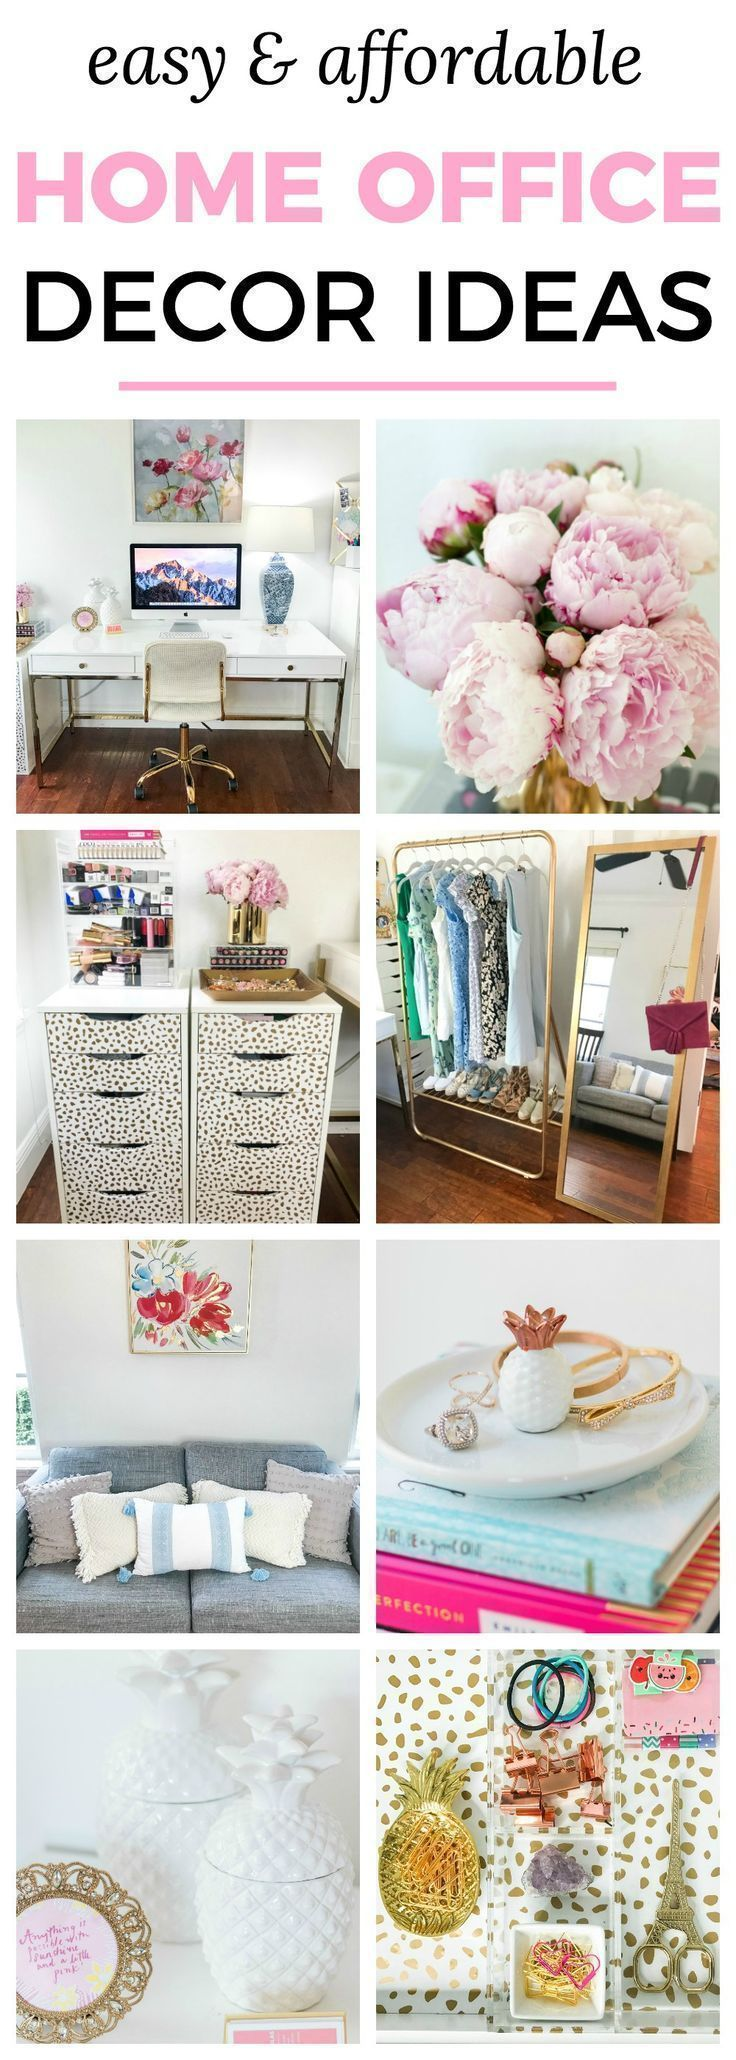 diy home office decor ideas easy. Easy \u0026 Affordable Home Office Decor Ideas   Cute Blogger Tour With White And Gold Details + 3 DIY Projects Feat Devine \u2026 Diy E